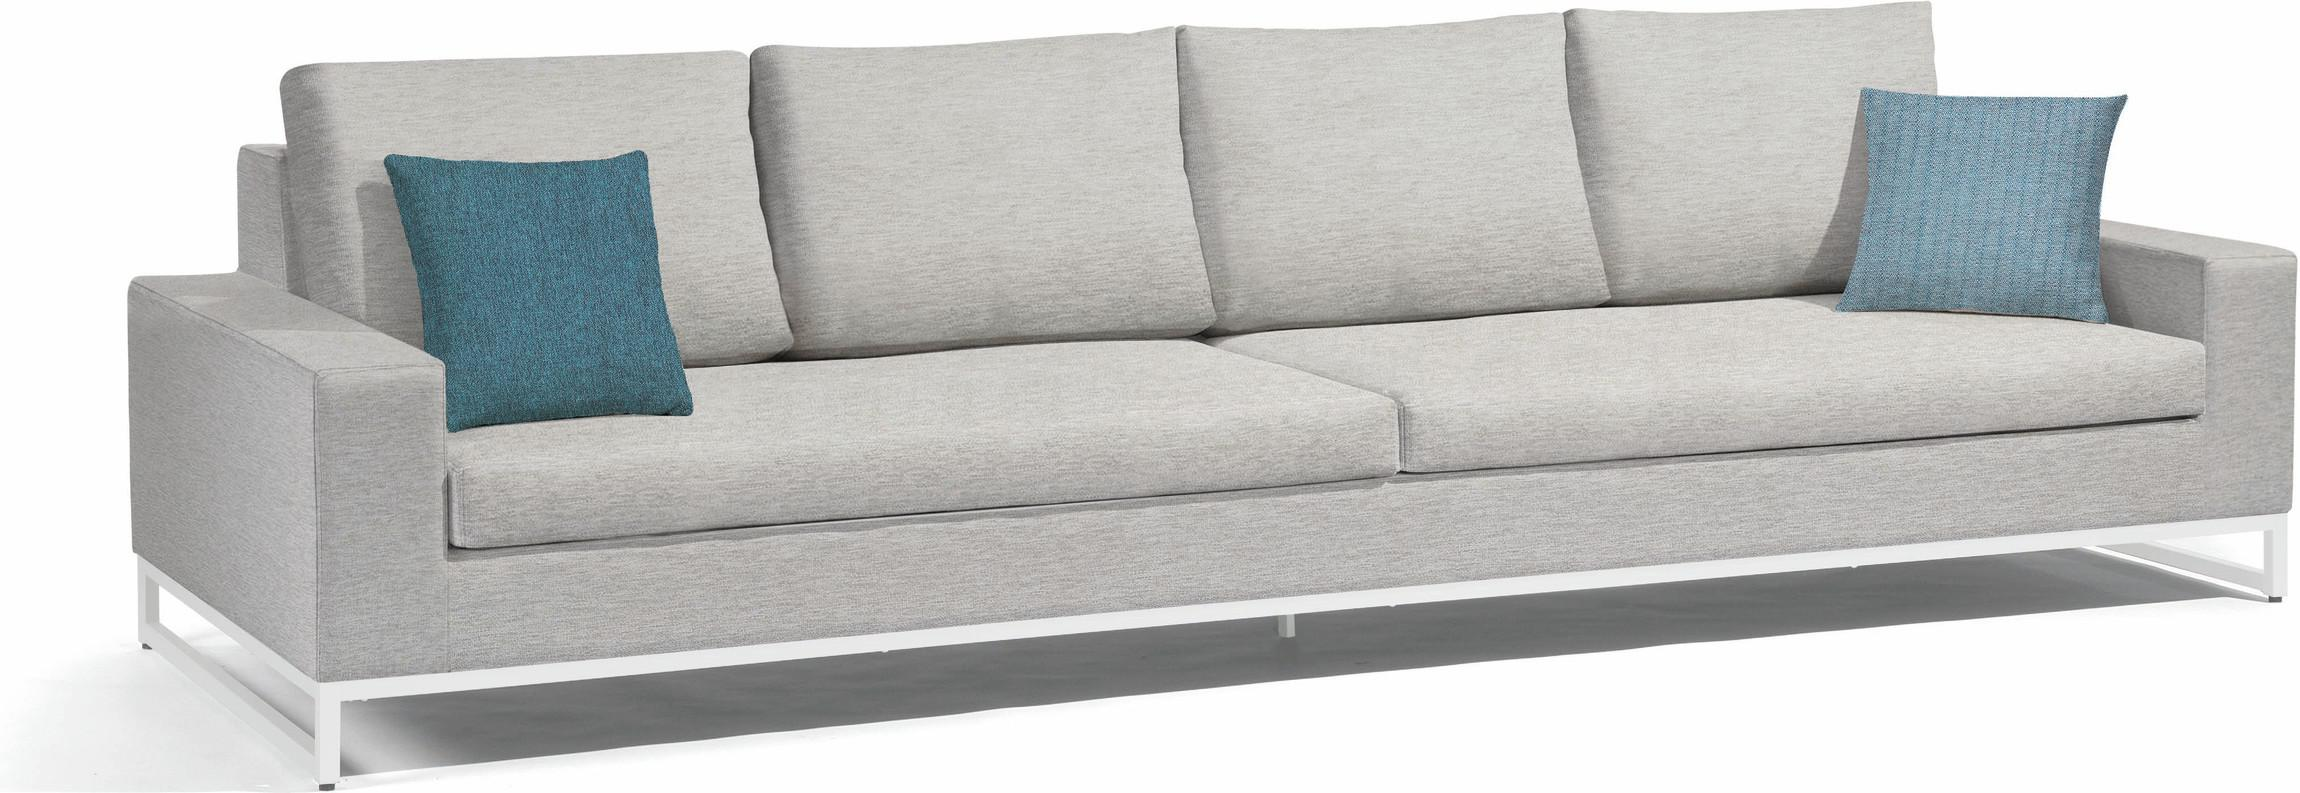 Zendo Sofa fixed - Lotus Smokey 290